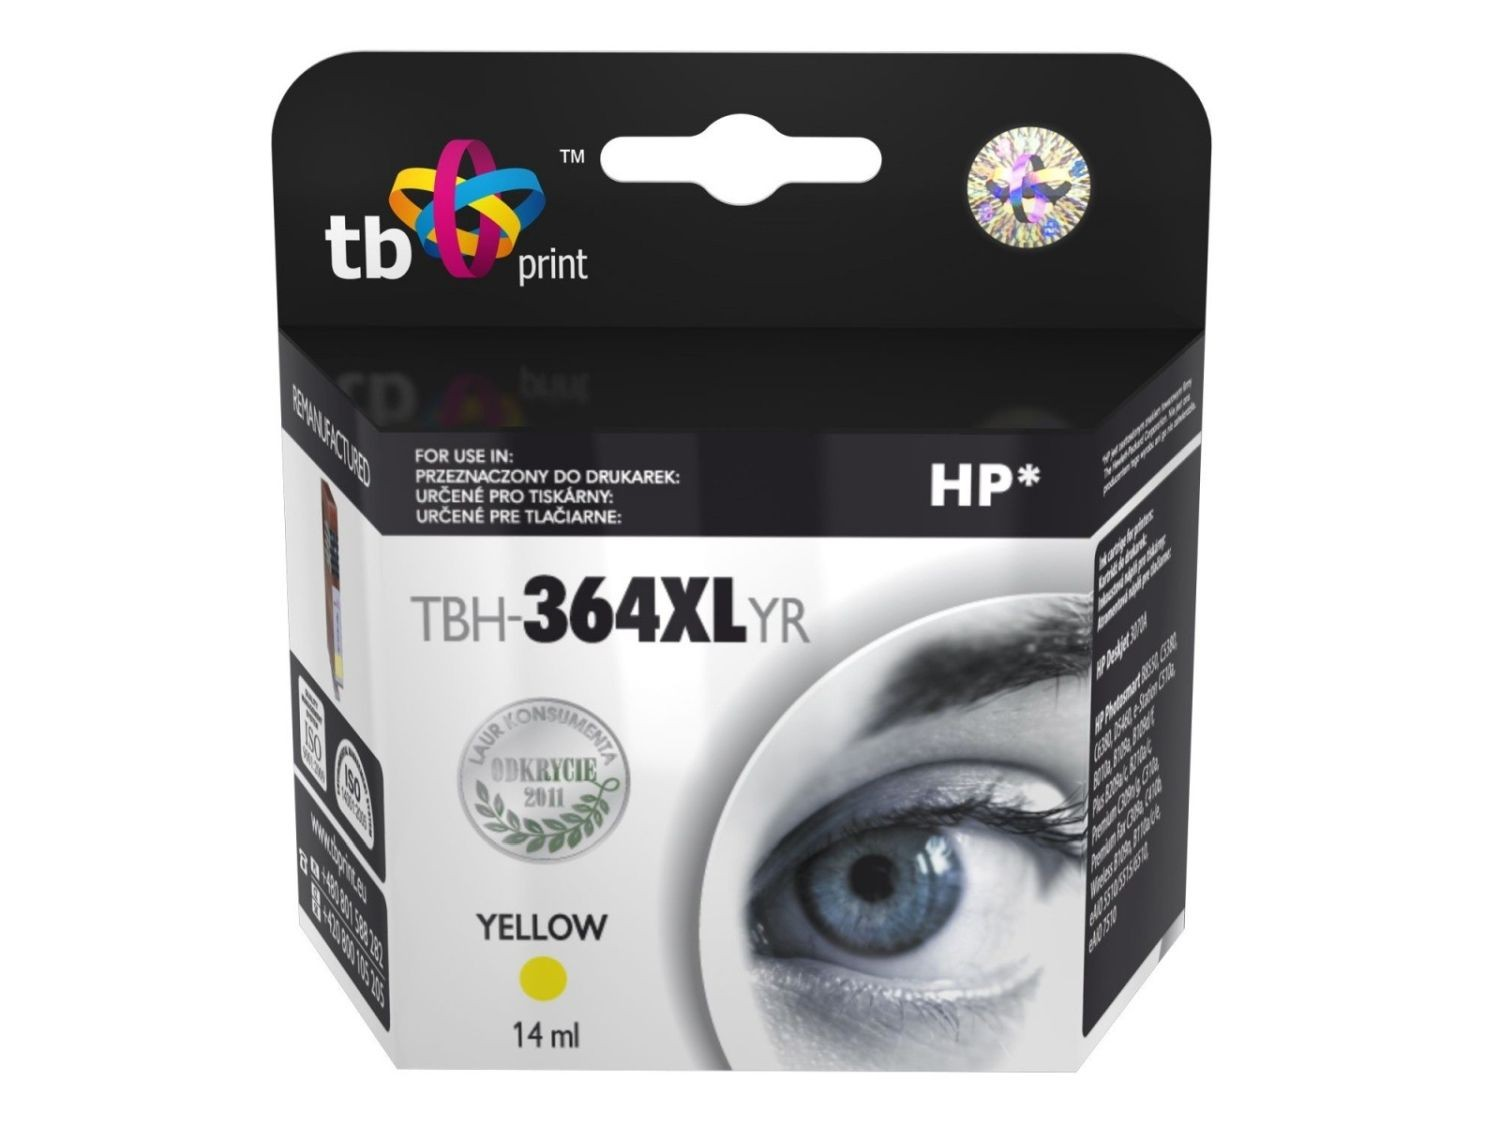 TB Print Tusz do HP PS B8550 TBH-364XLYR YE ref.